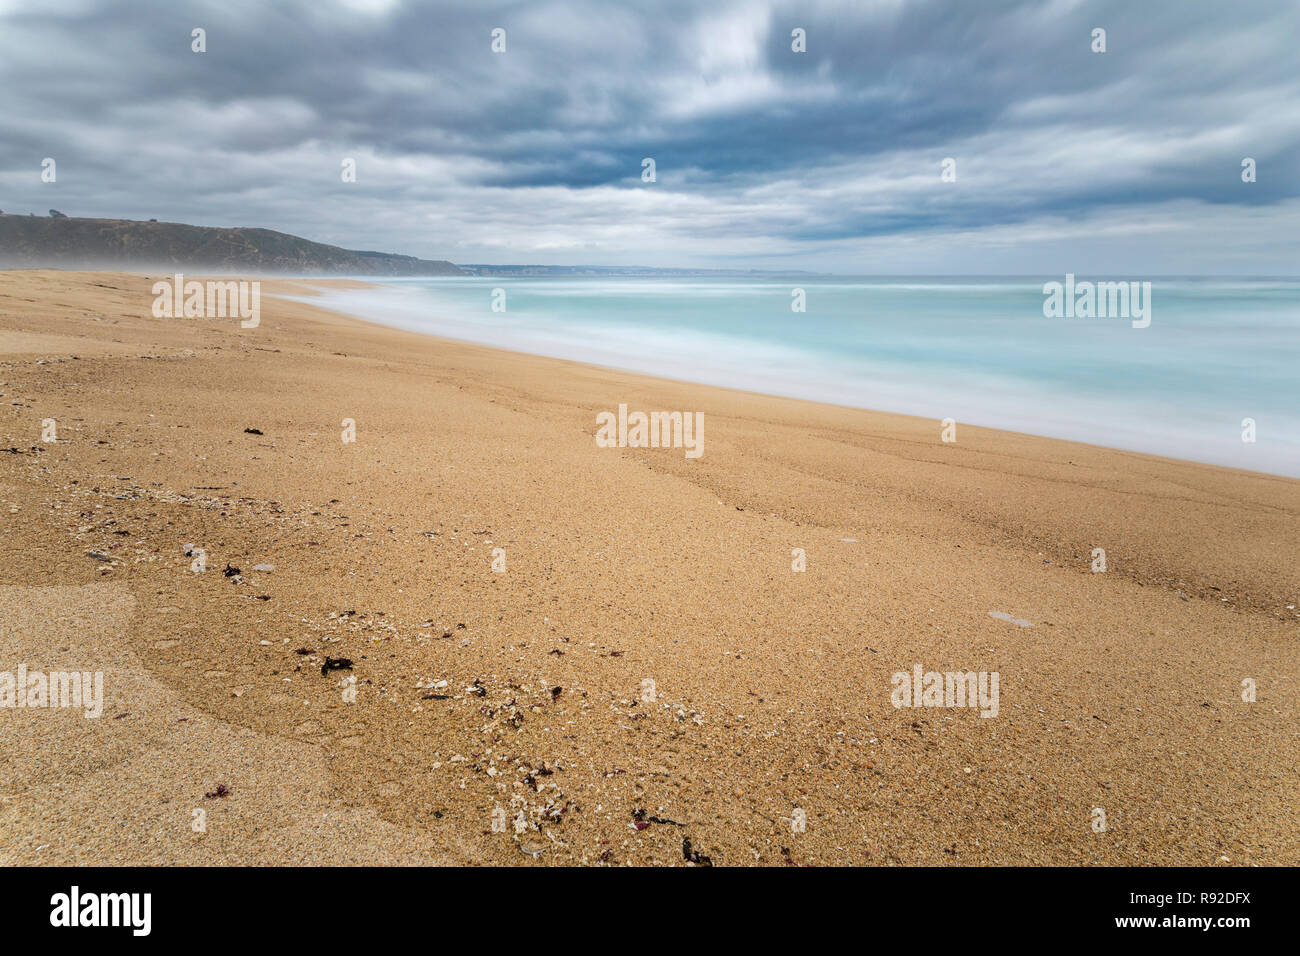 Tunquen Beach in Valparaiso region and close to Algarrobo, an awesome and wild beach with a lot of wildlife because of it wetlands and turquoise water Stock Photo